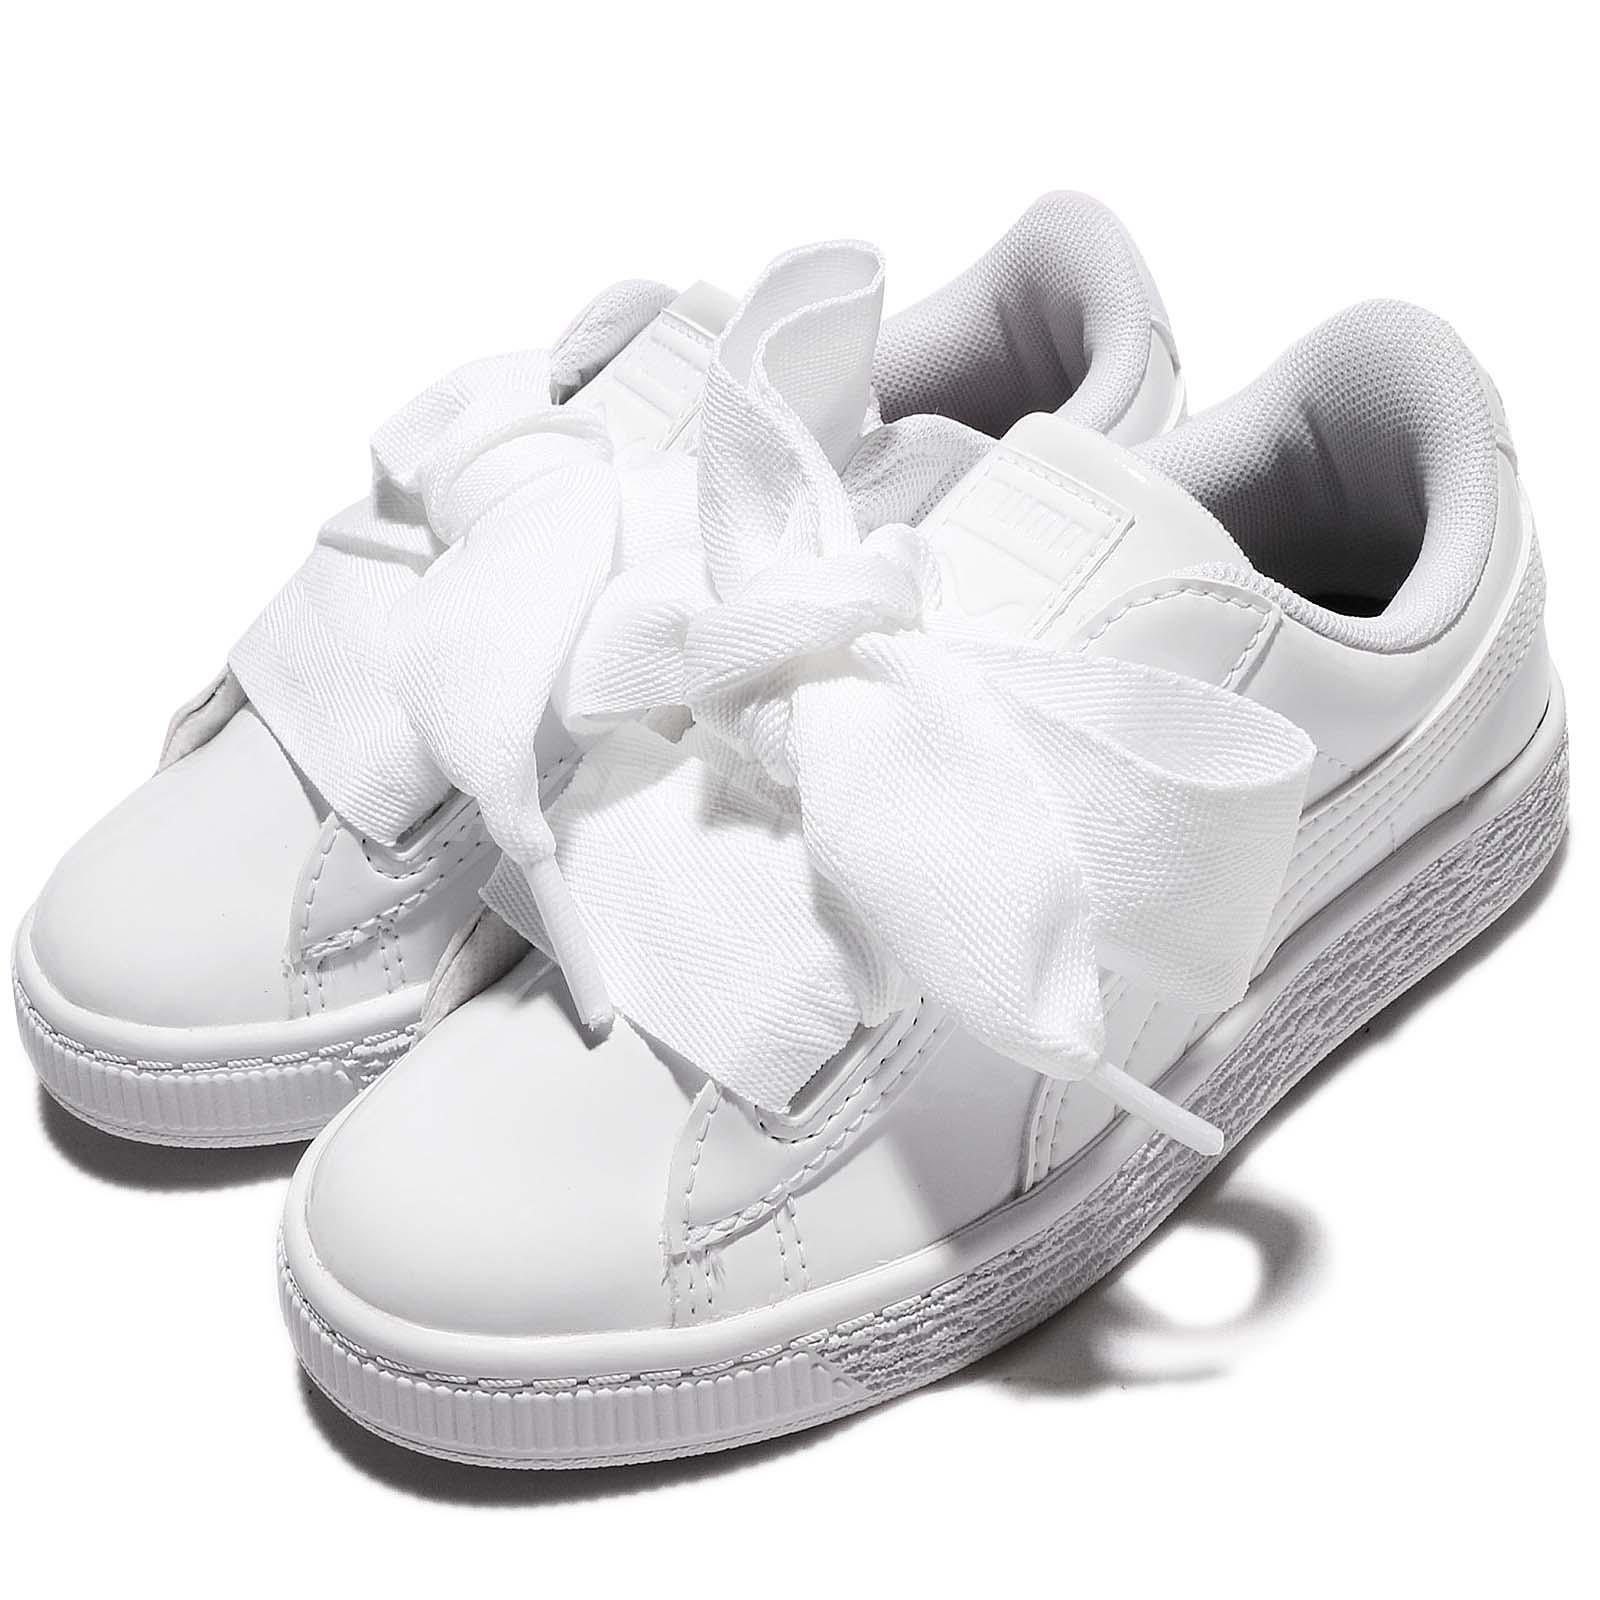 Details about Puma Basket Heart Patent PS Leather White Kids Junior Girls Shoes 36335202